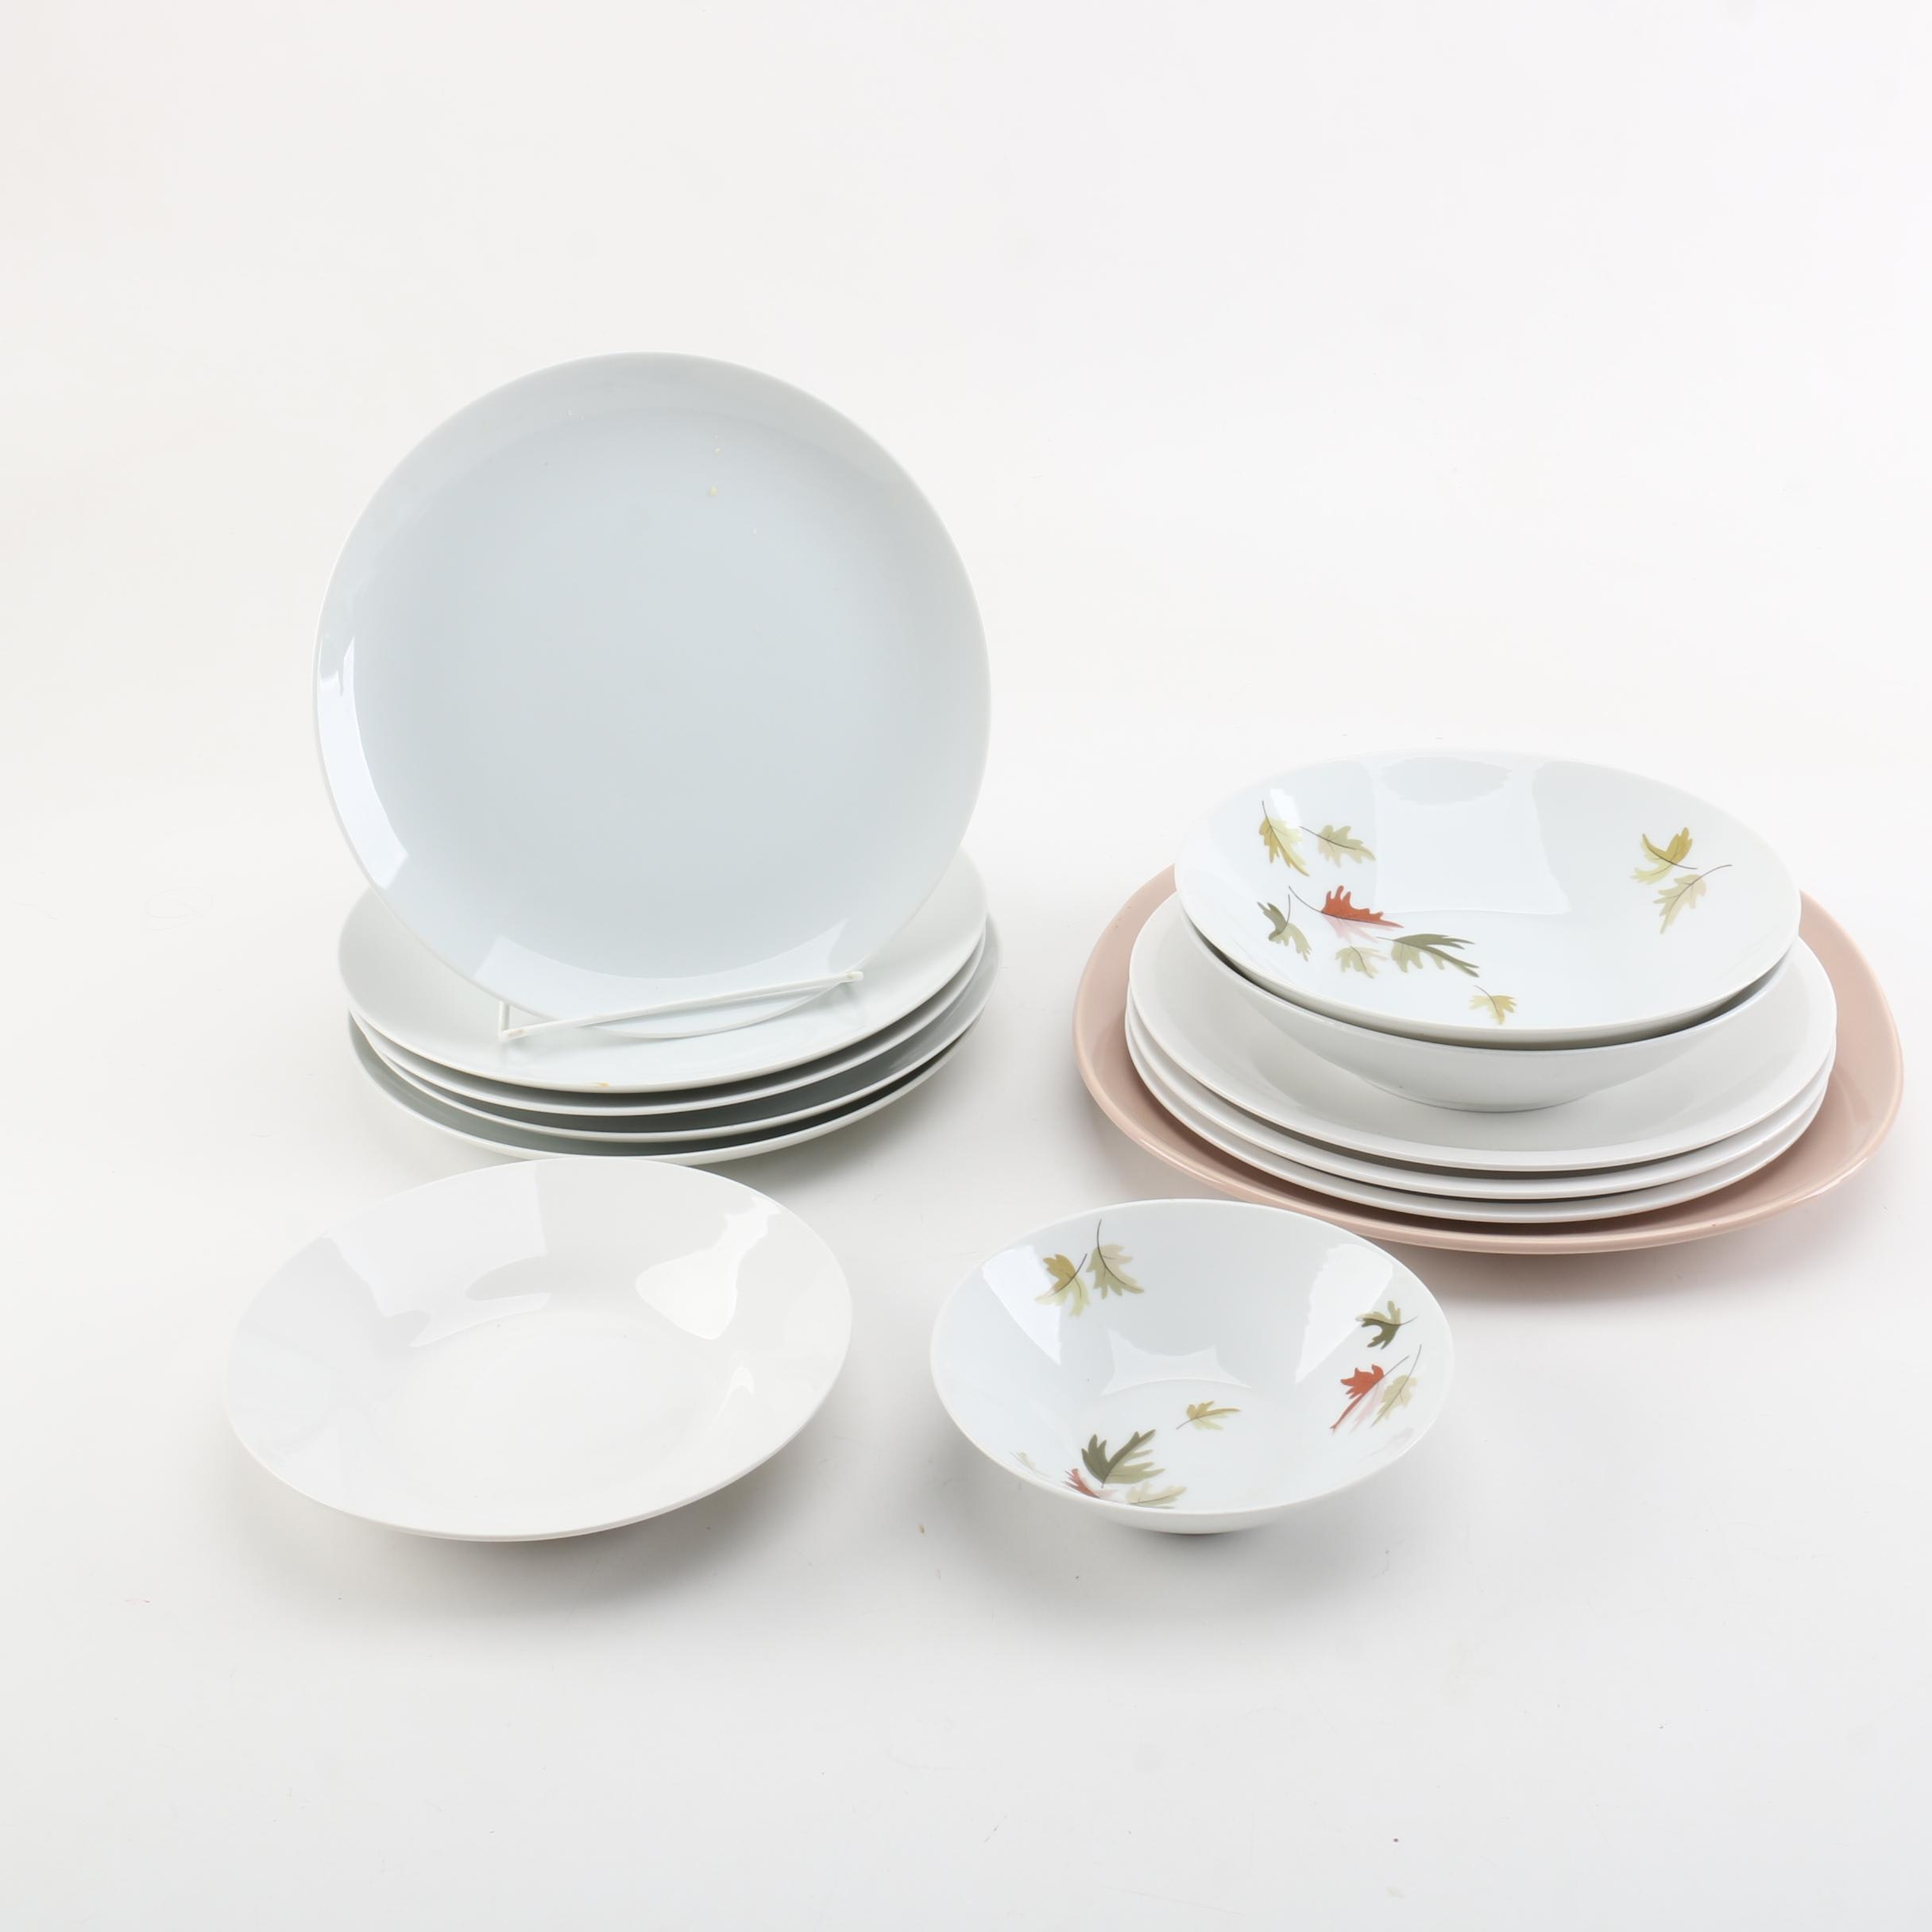 Porcelain and Ceramic Tableware Featuring Mikasa